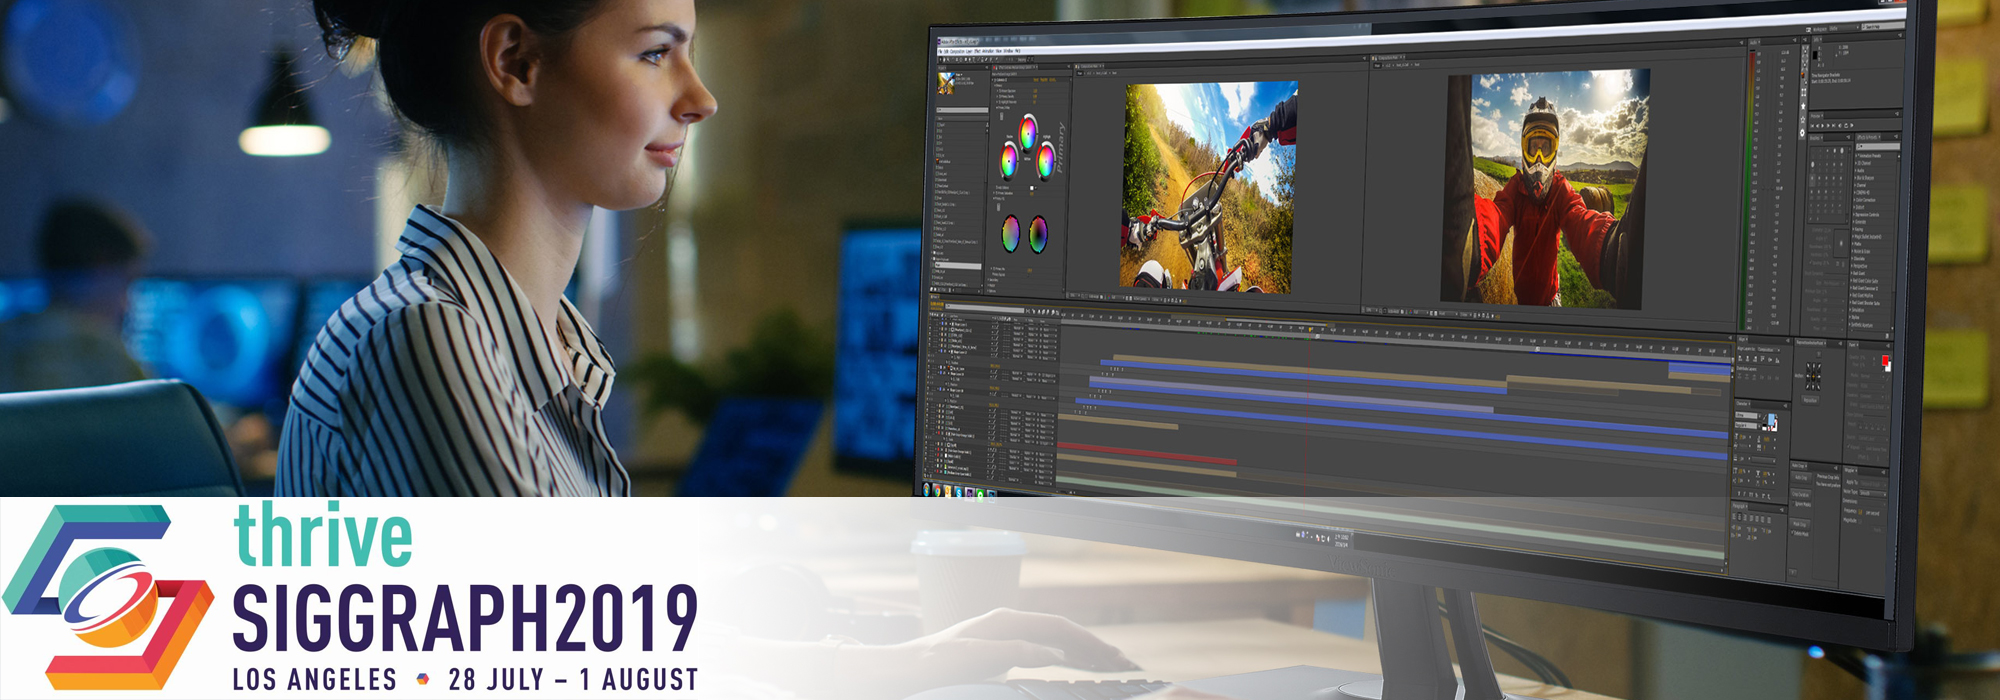 ViewSonic Launches the VP3481 ColorPro™ Professional Monitor to Deliver Exceptional Color Accuracy and Incredible Detail